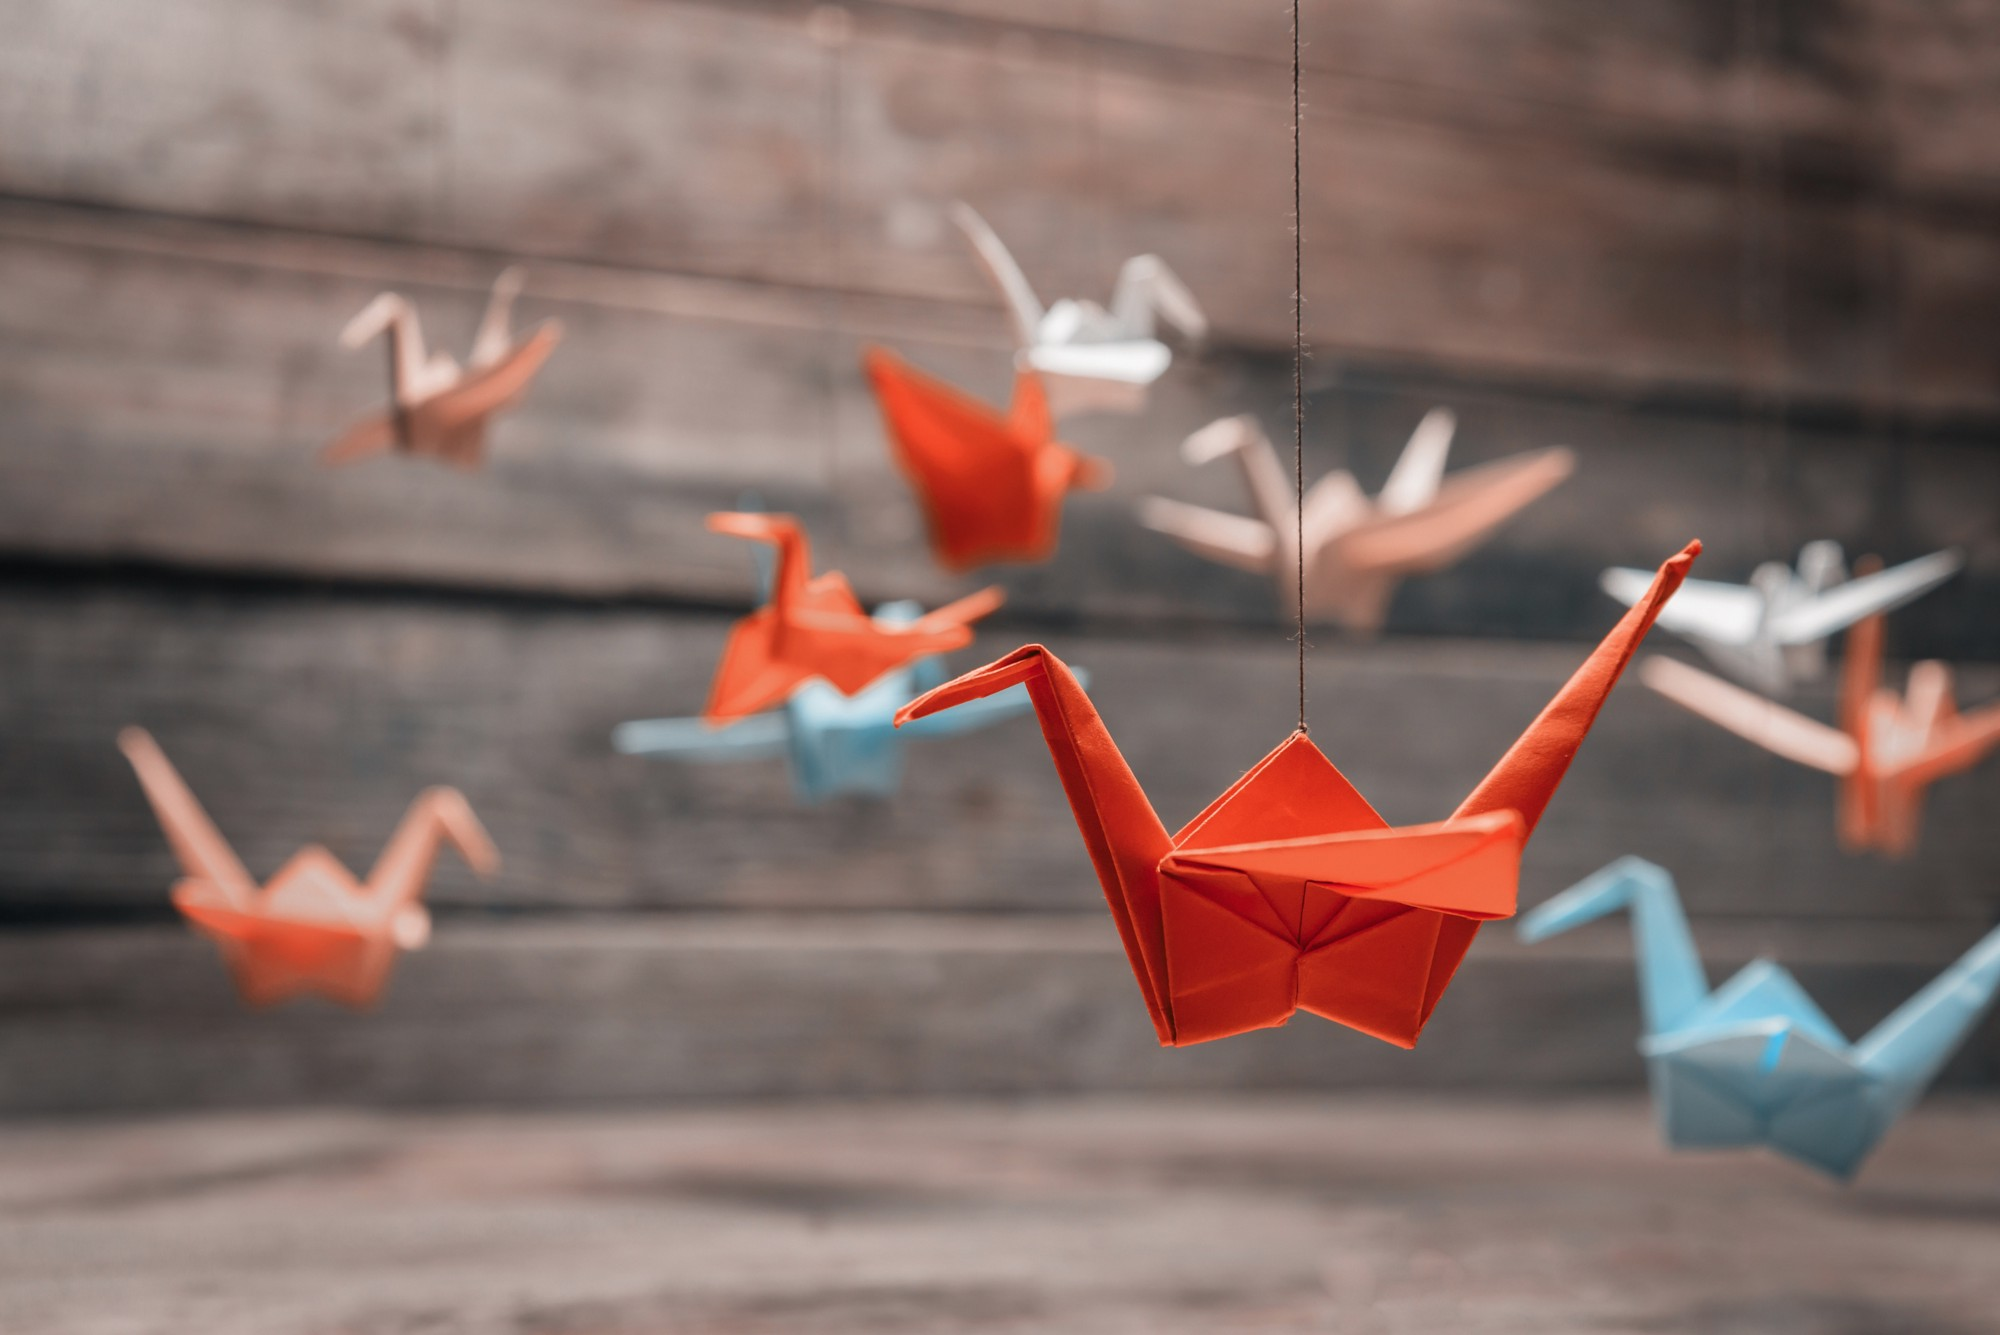 A thousand paper cranes the insanity of war dr arif akhtar a thousand paper cranes the insanity of war jeuxipadfo Choice Image